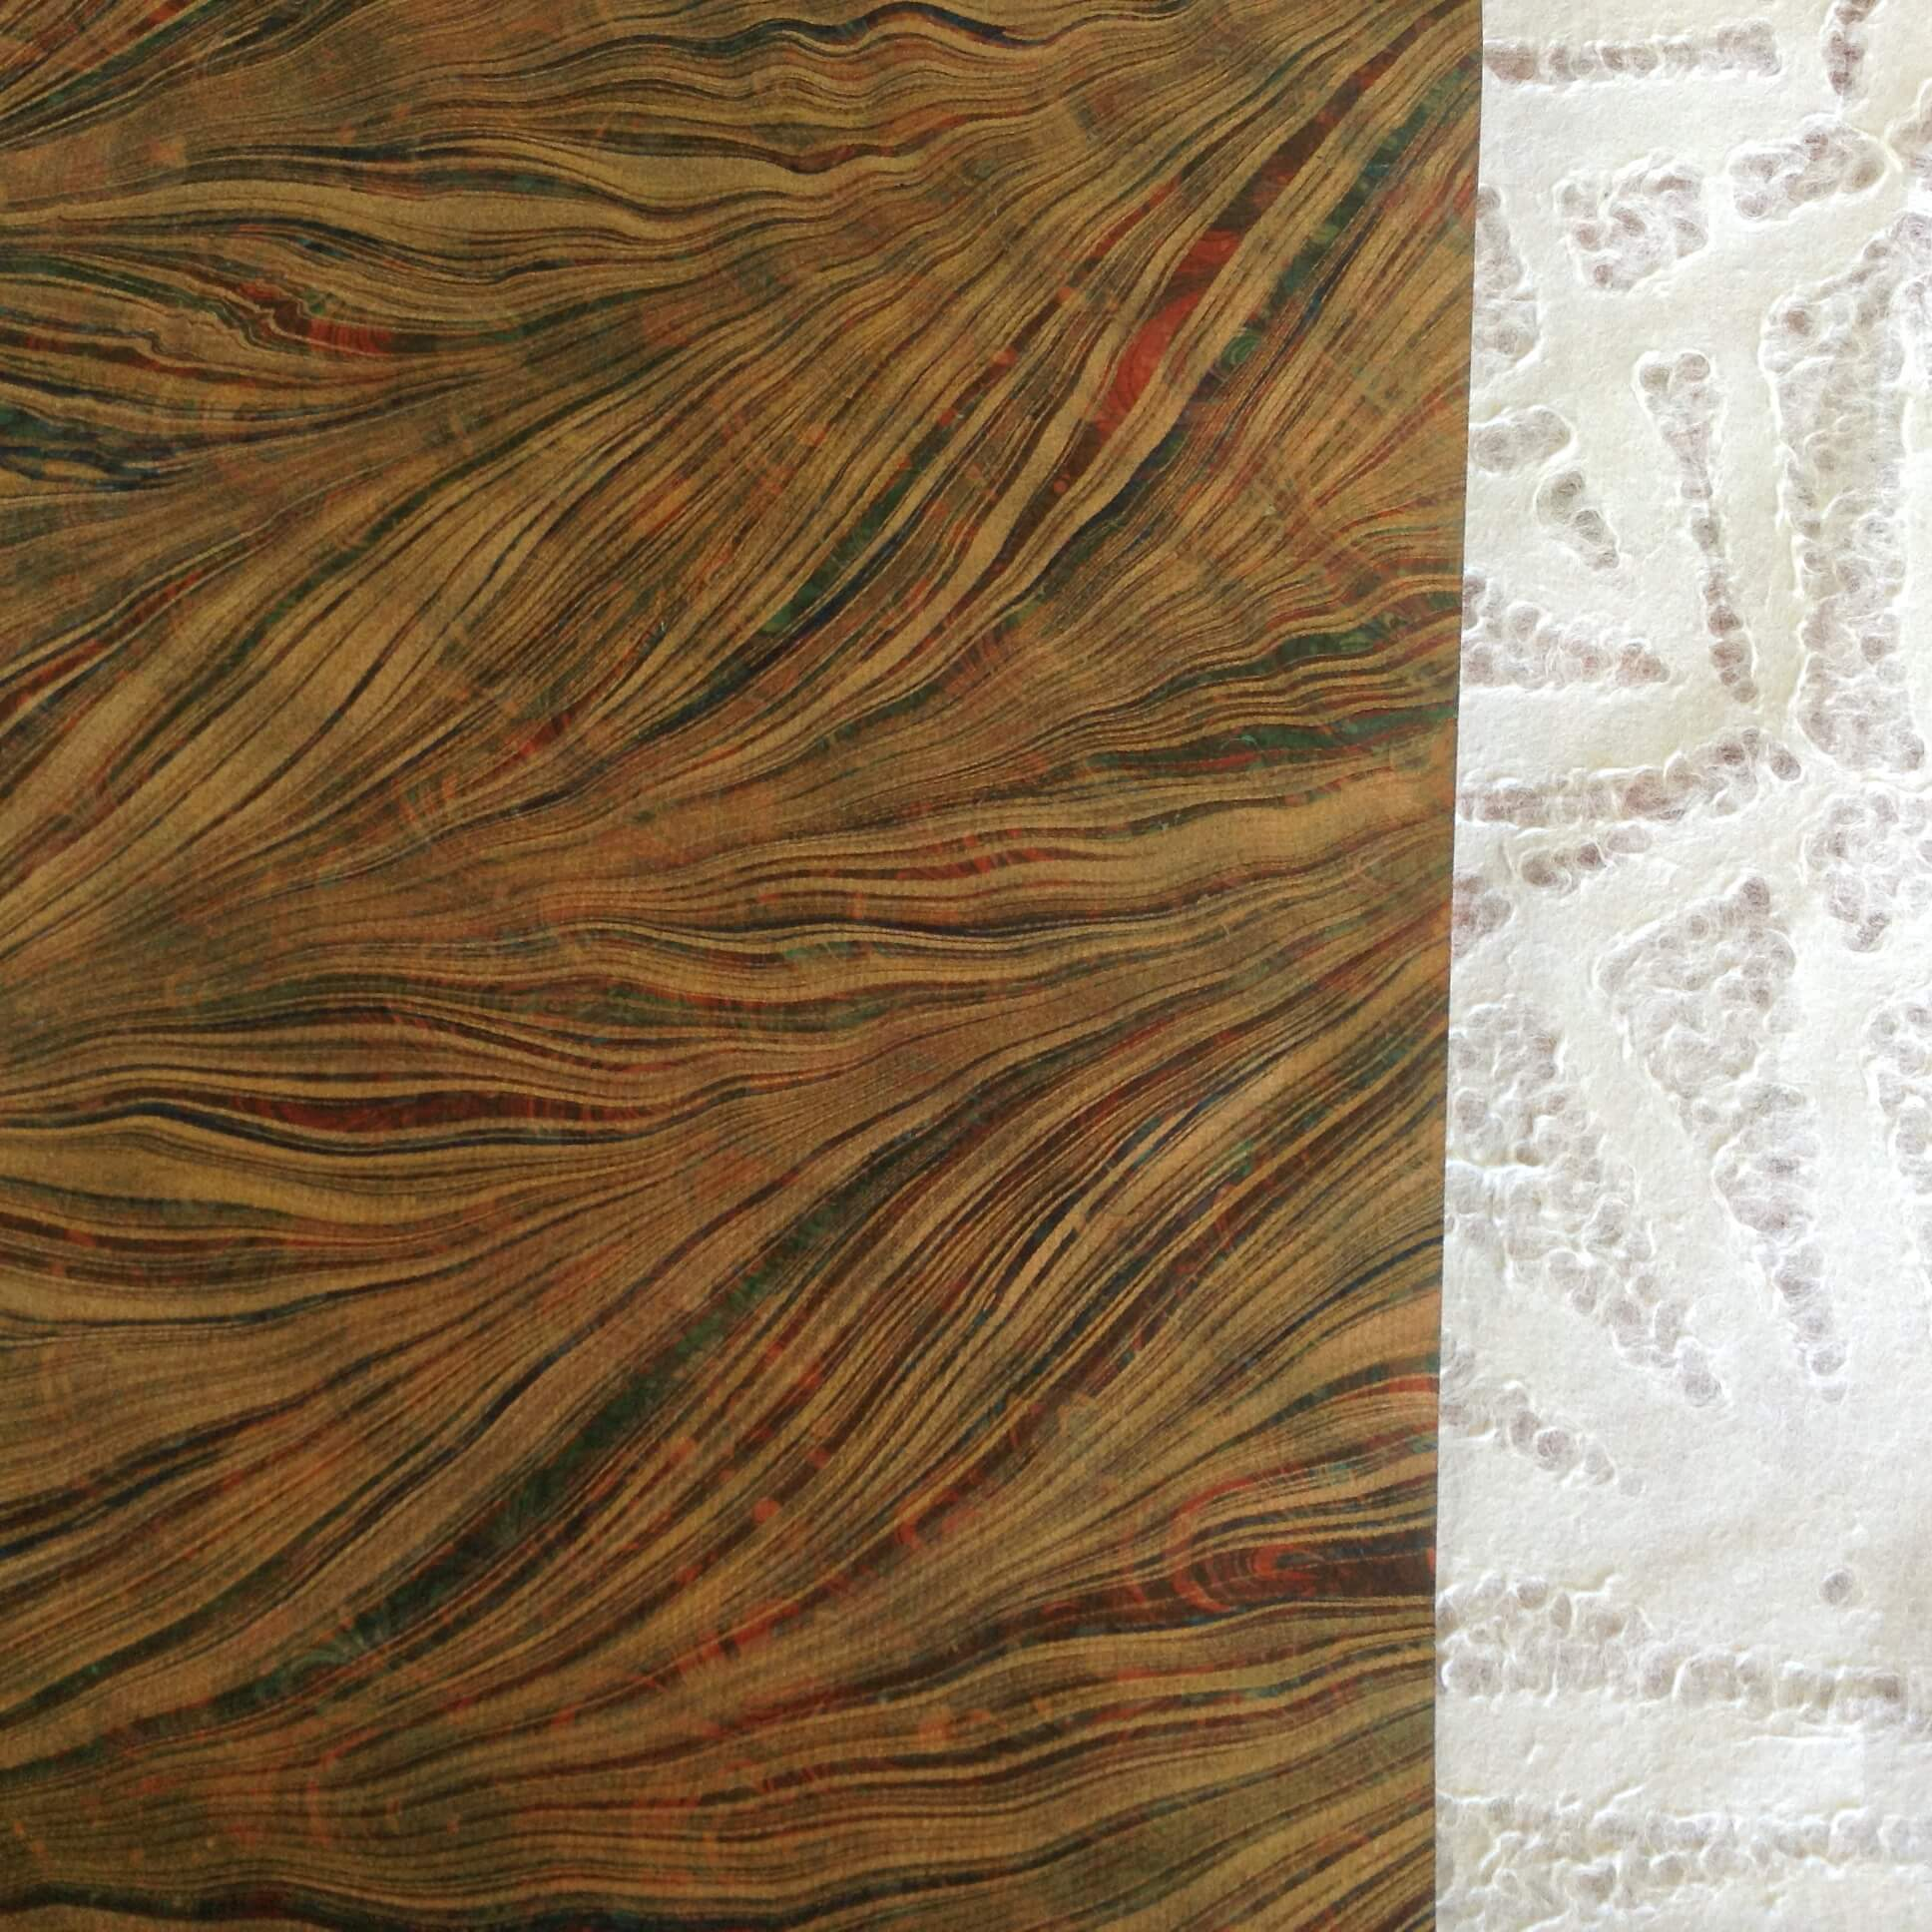 Contrasting papers, including a sheet of French double-marbled paper.